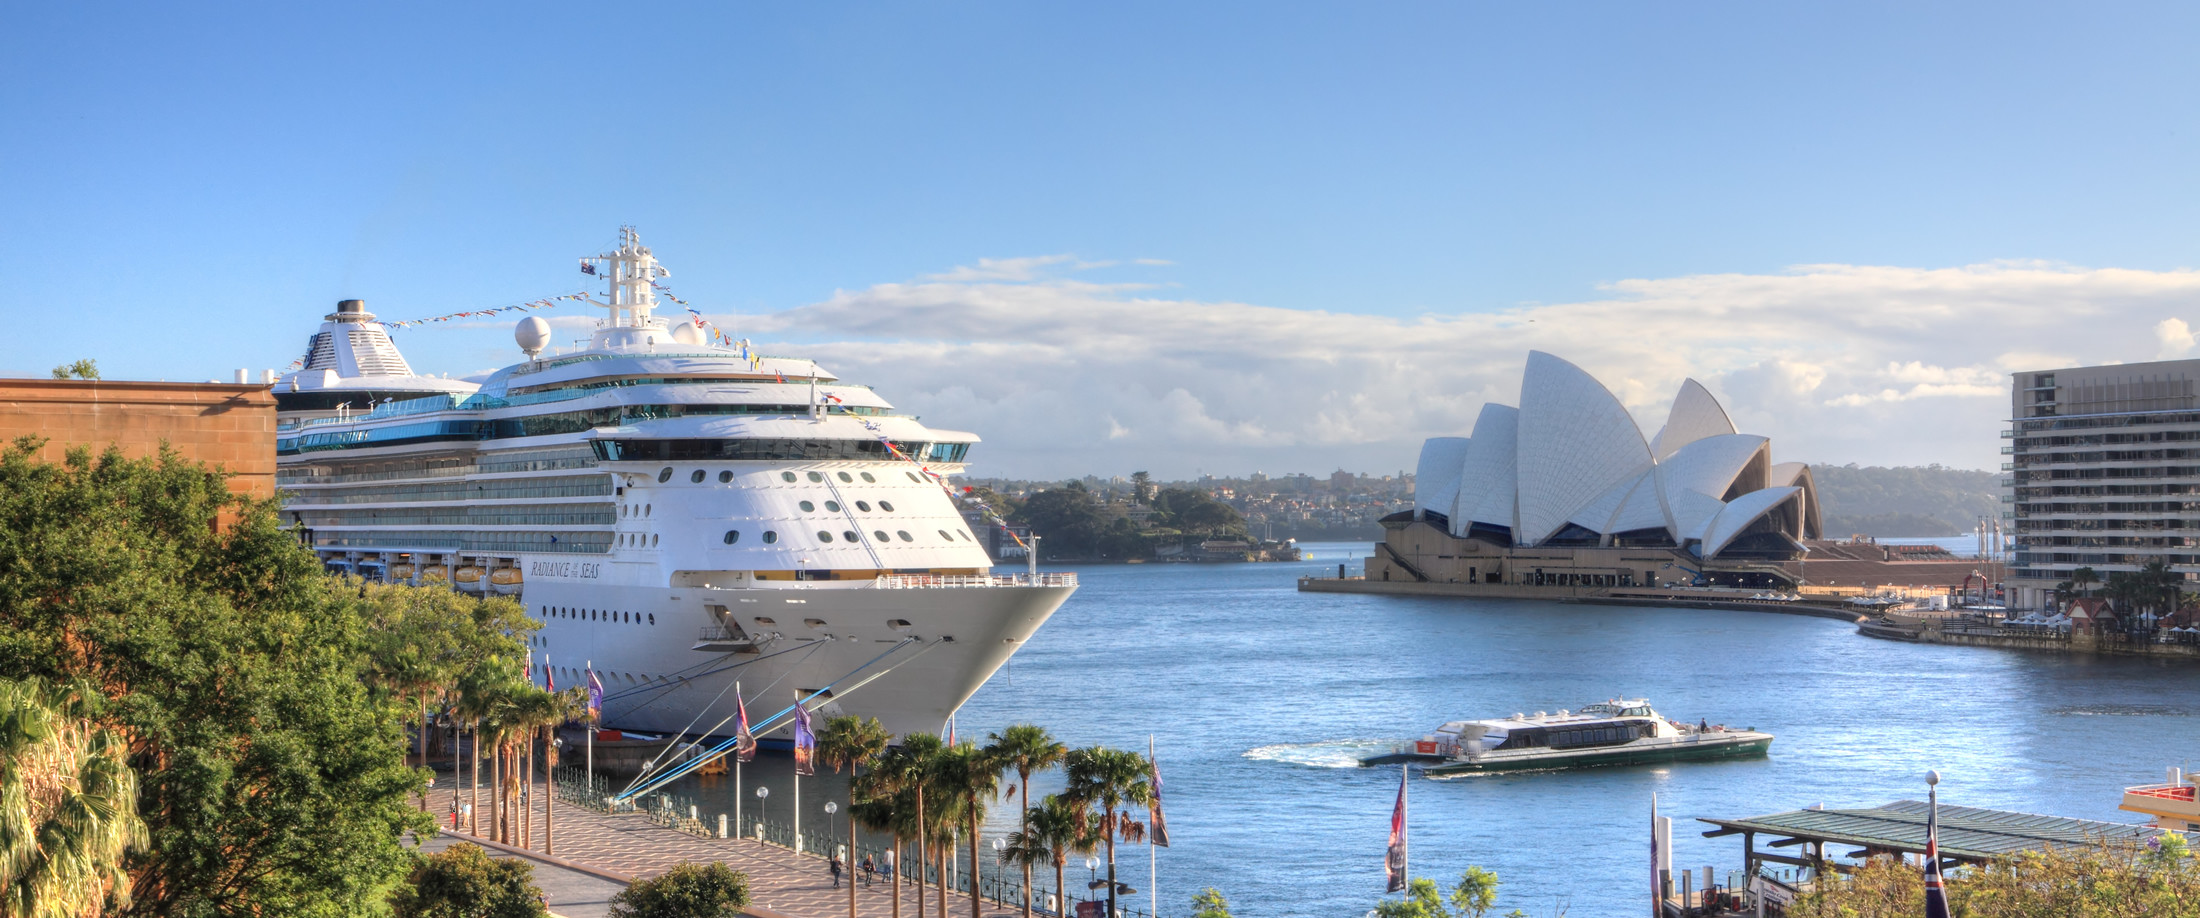 Cruise ship Transfers sydney